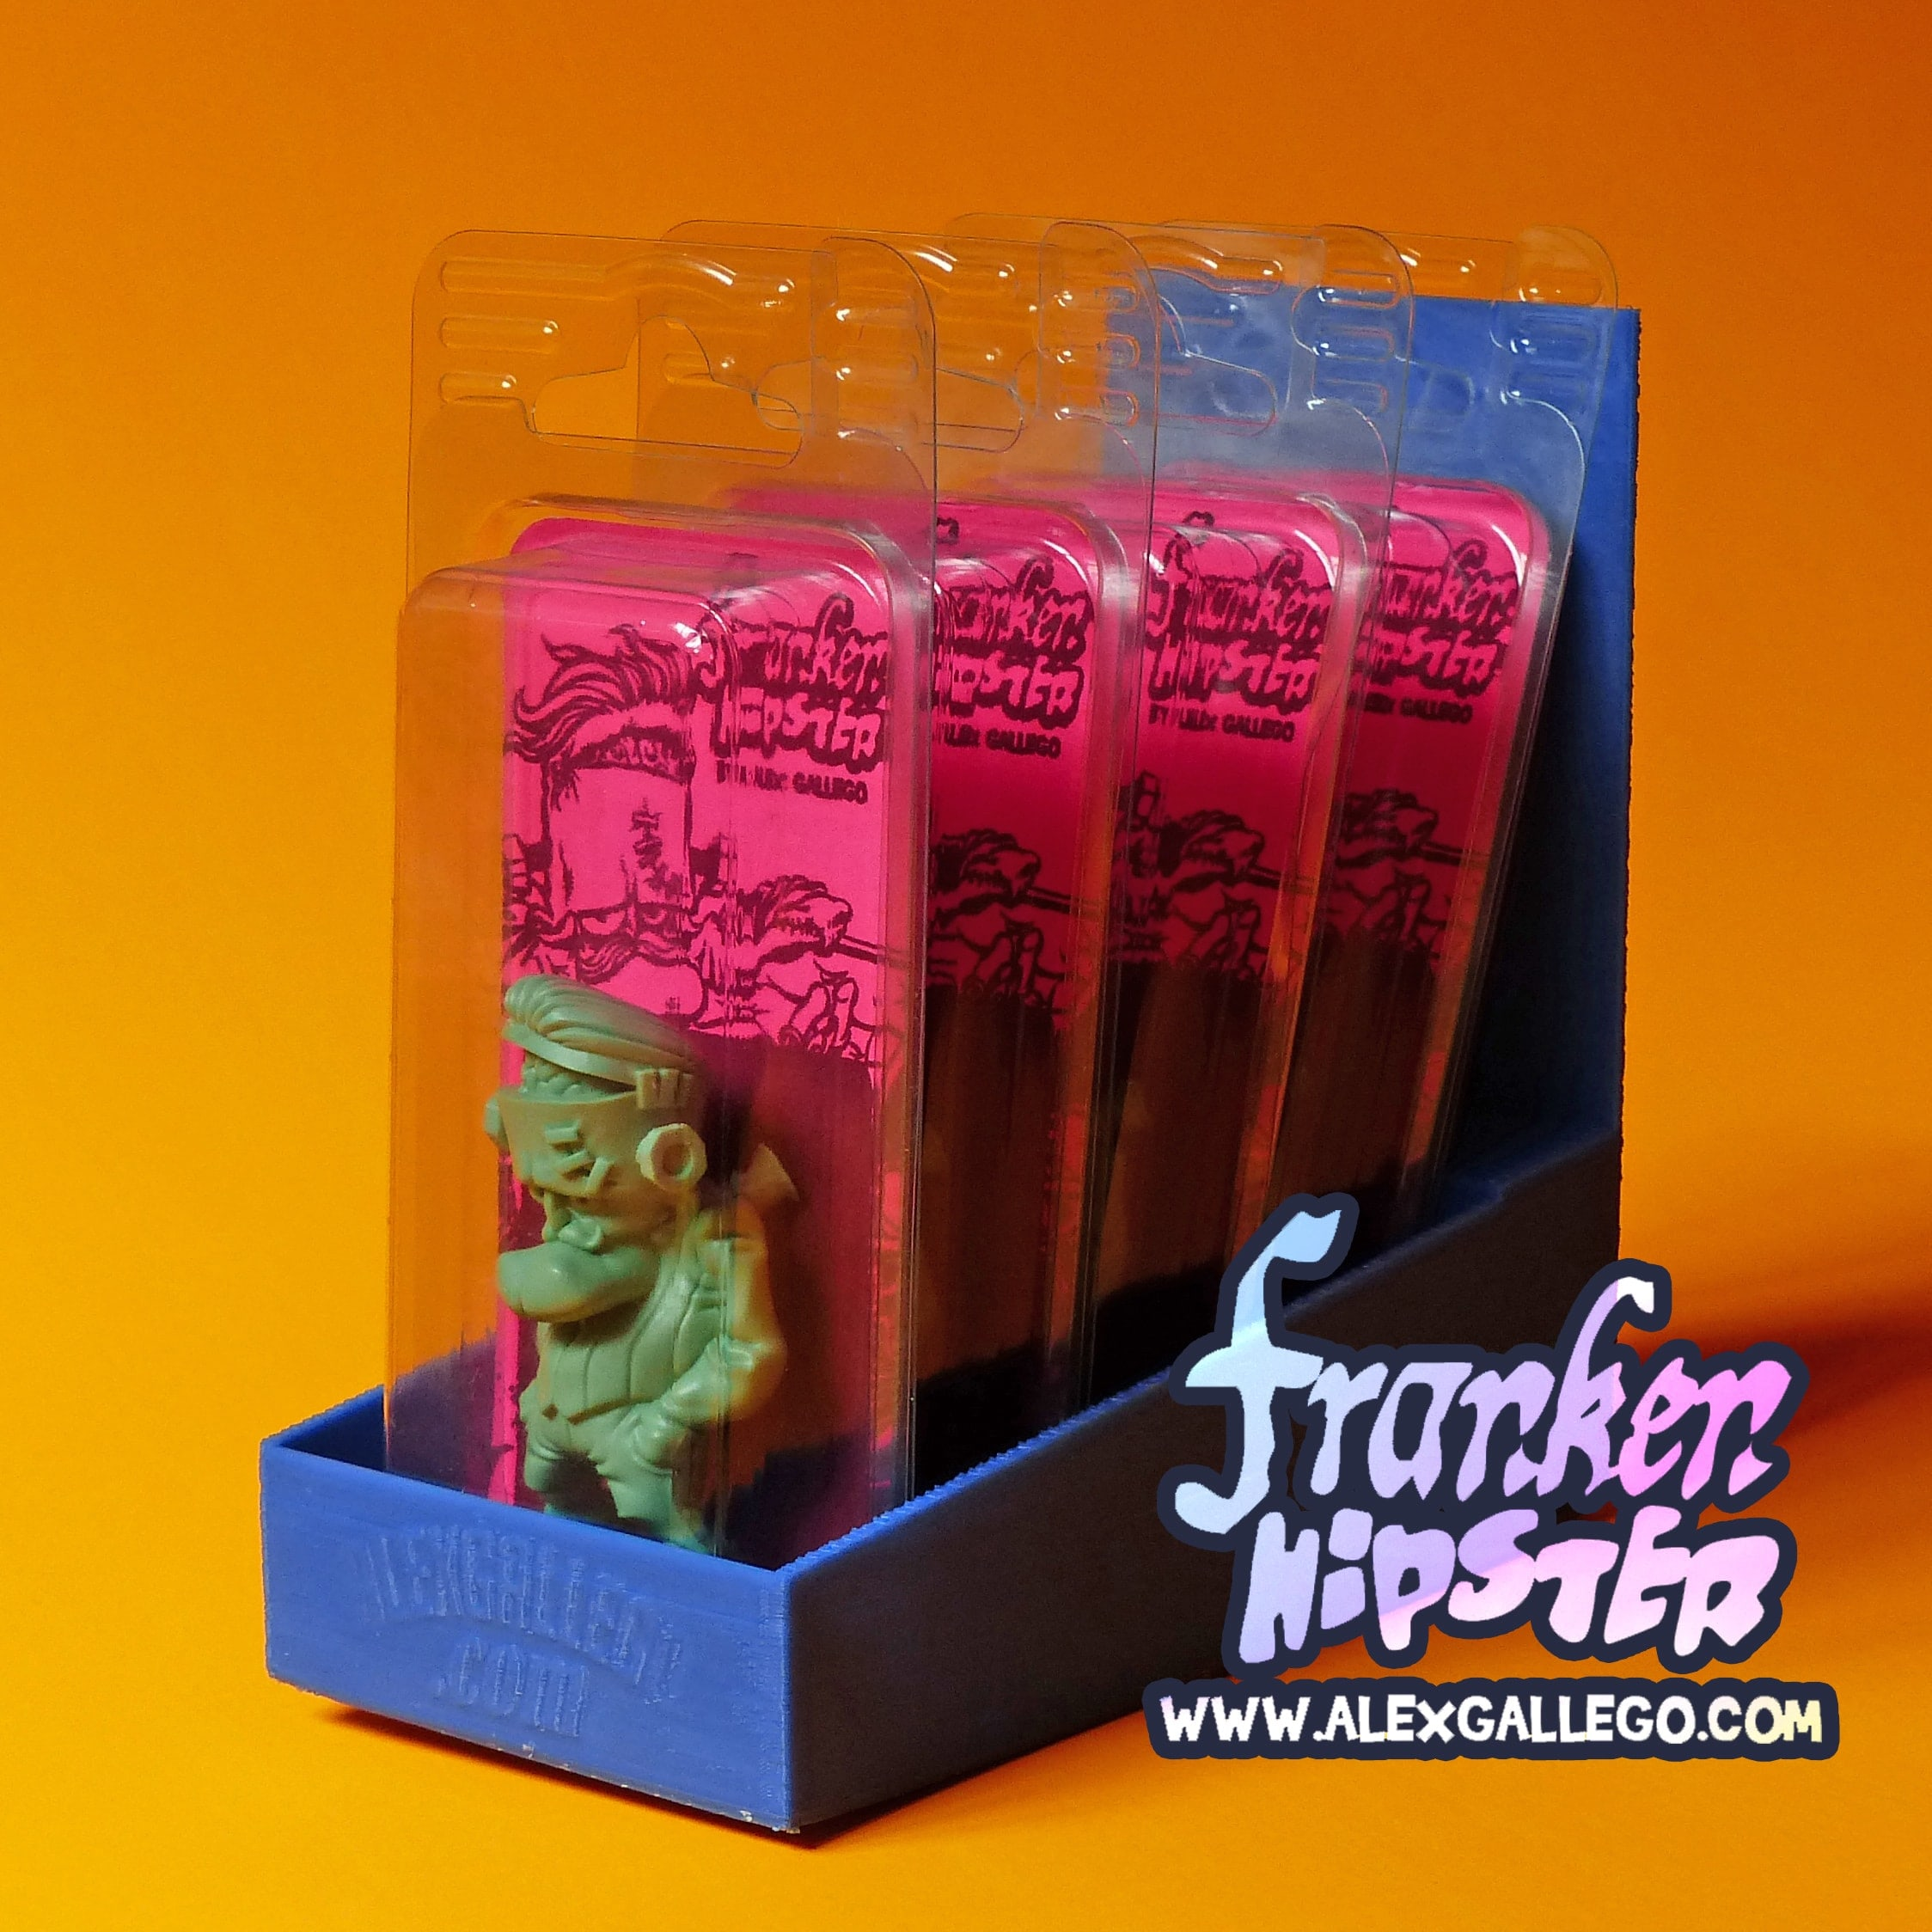 Frankenhipster Art Toy Resin Toy Alex Gallego